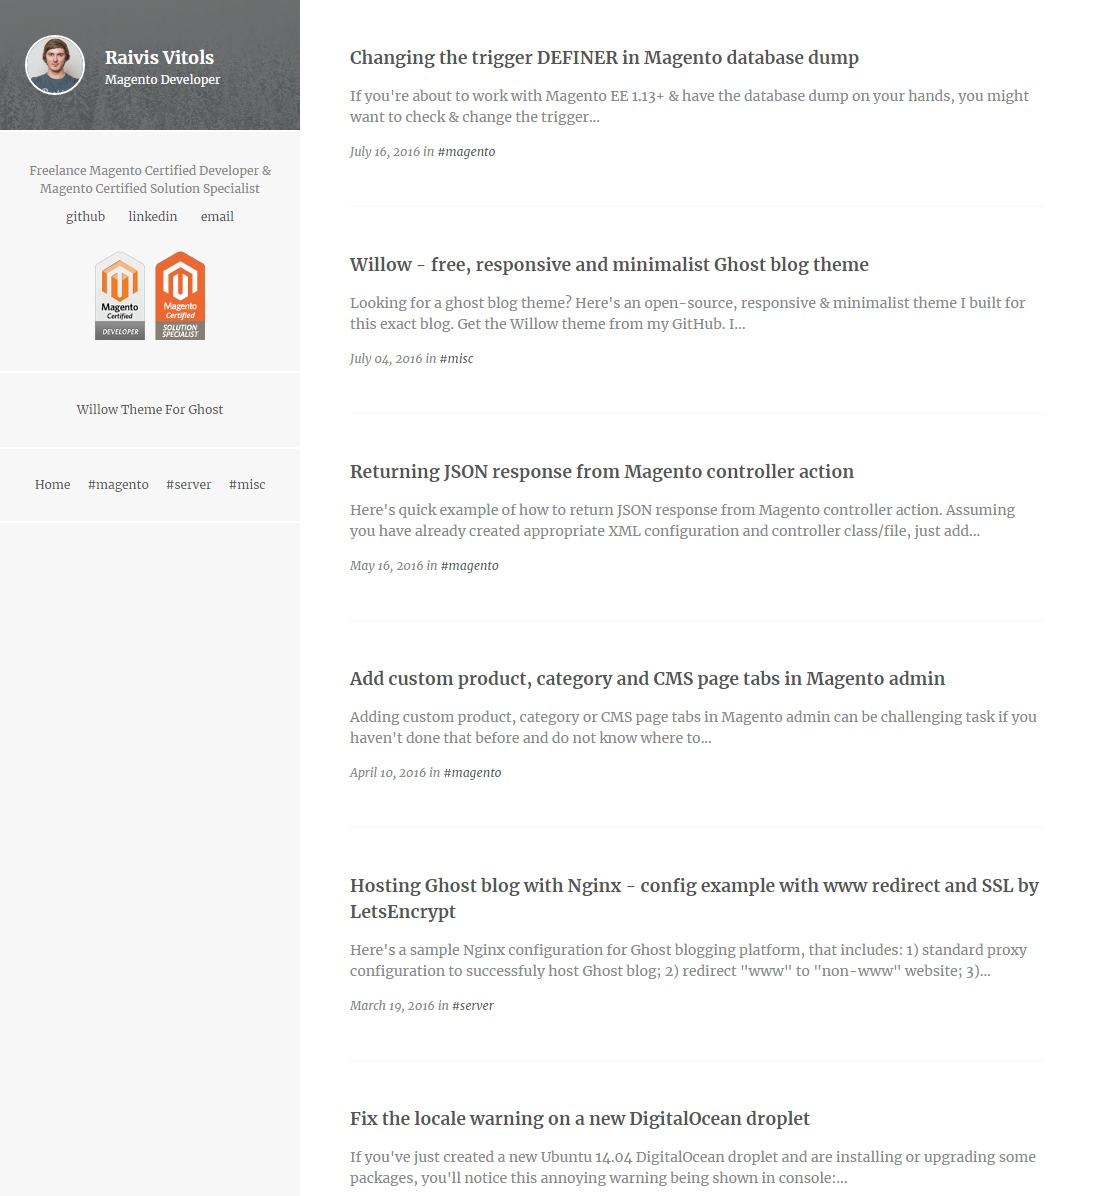 responsive and minimalist theme for Ghost blogging platform